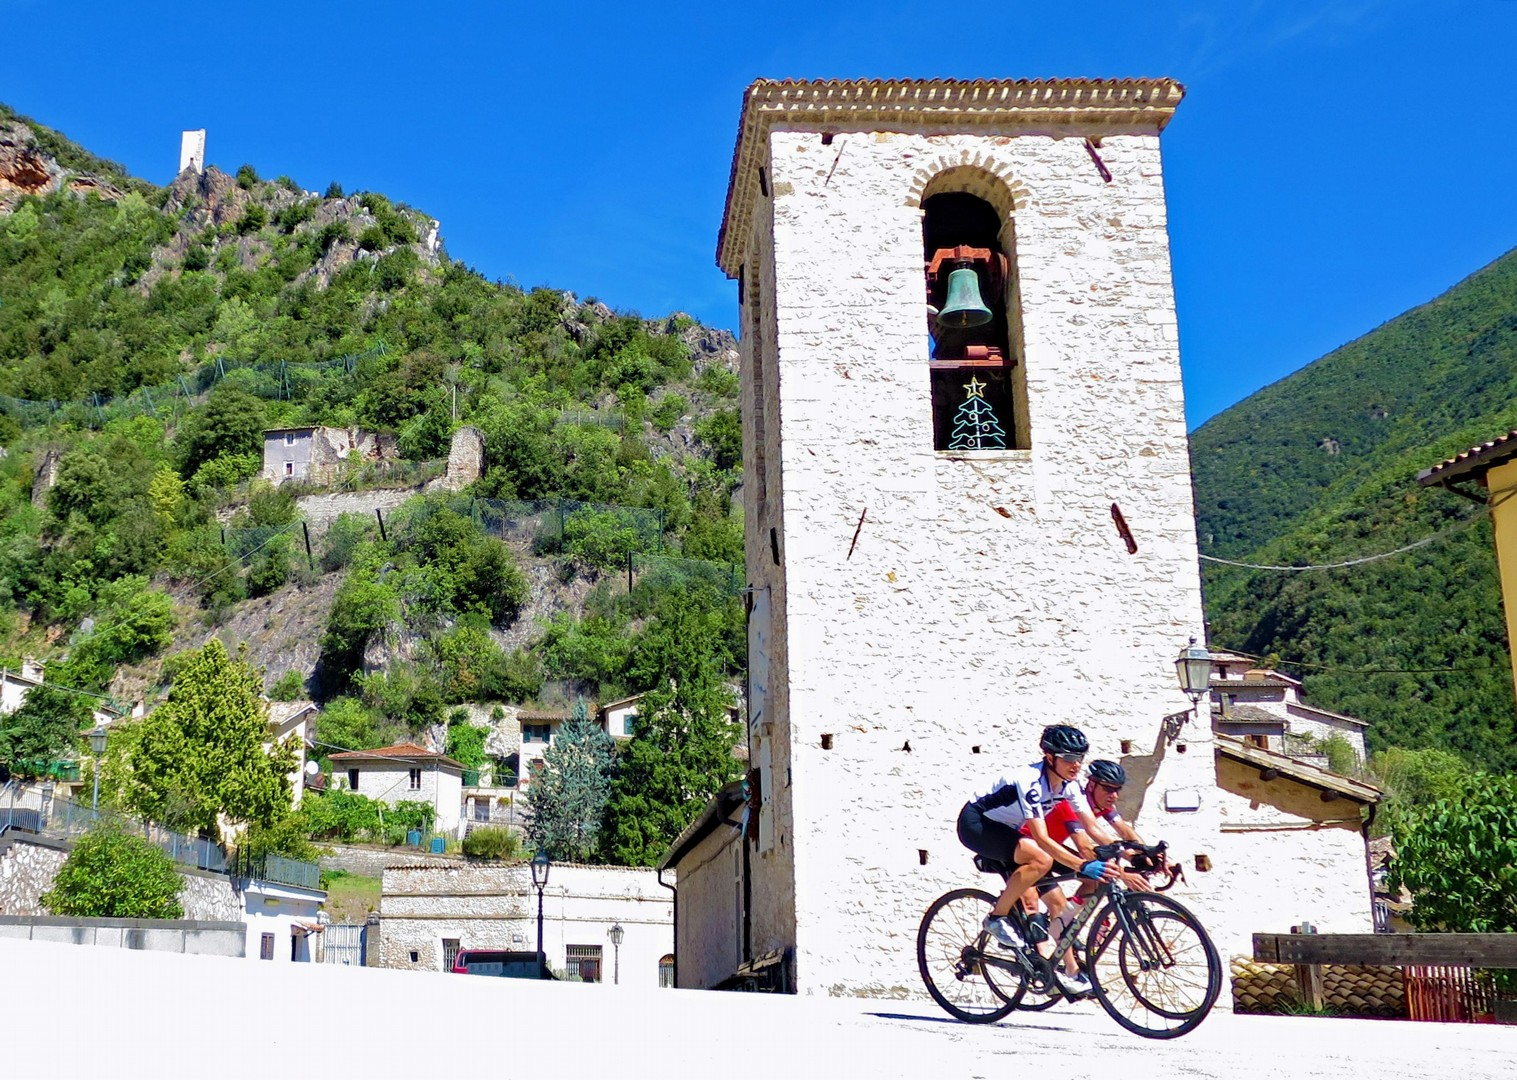 guided-road-cycling-holiday-italy.jpg - Italy - Grand Traverse - South to North (22 days) - Guided Road Cycling Holiday - Road Cycling